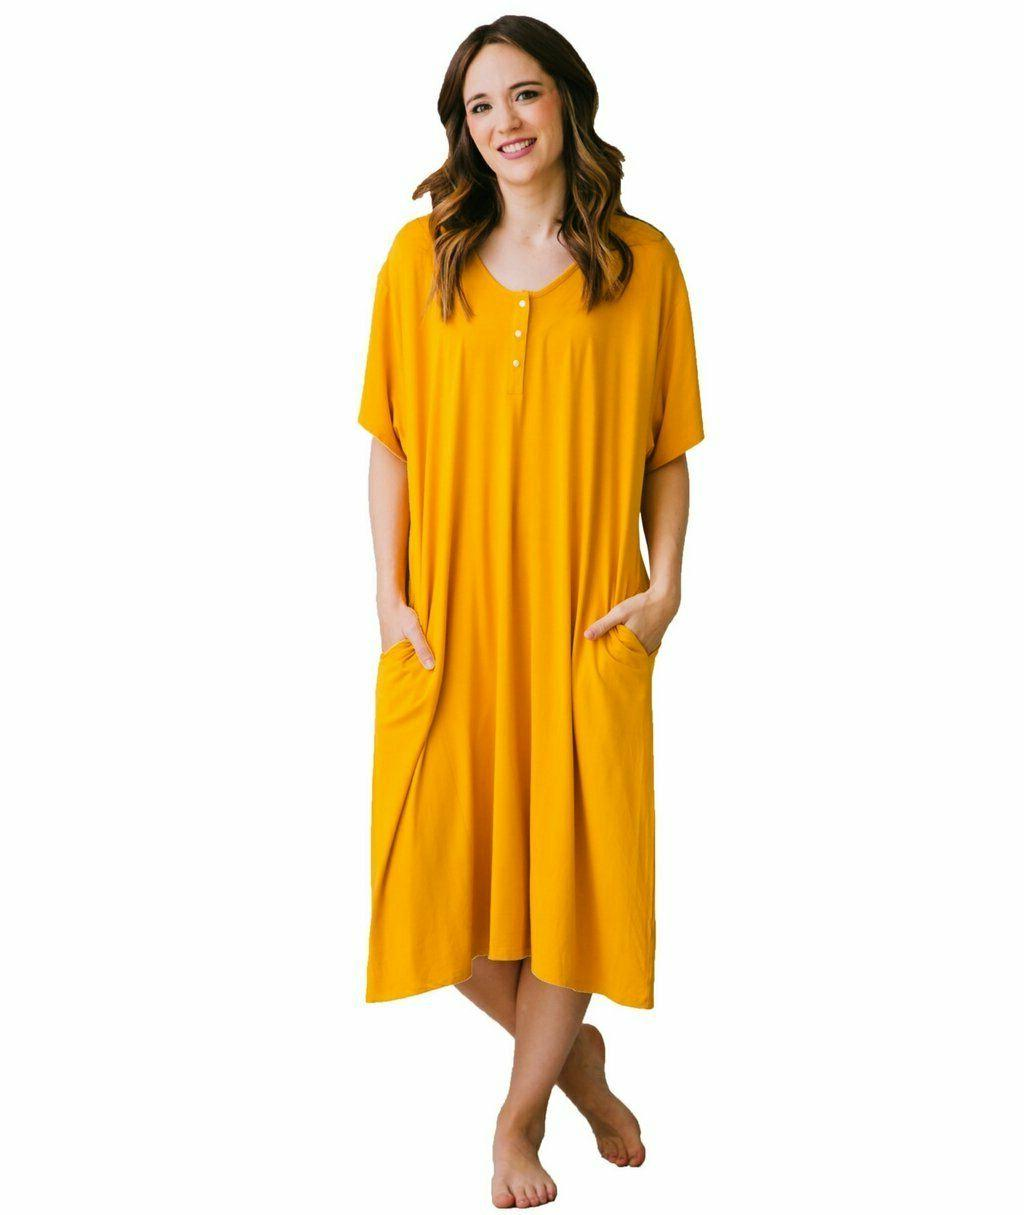 Undercover House 24-7 Maternity Nightgown NEW!